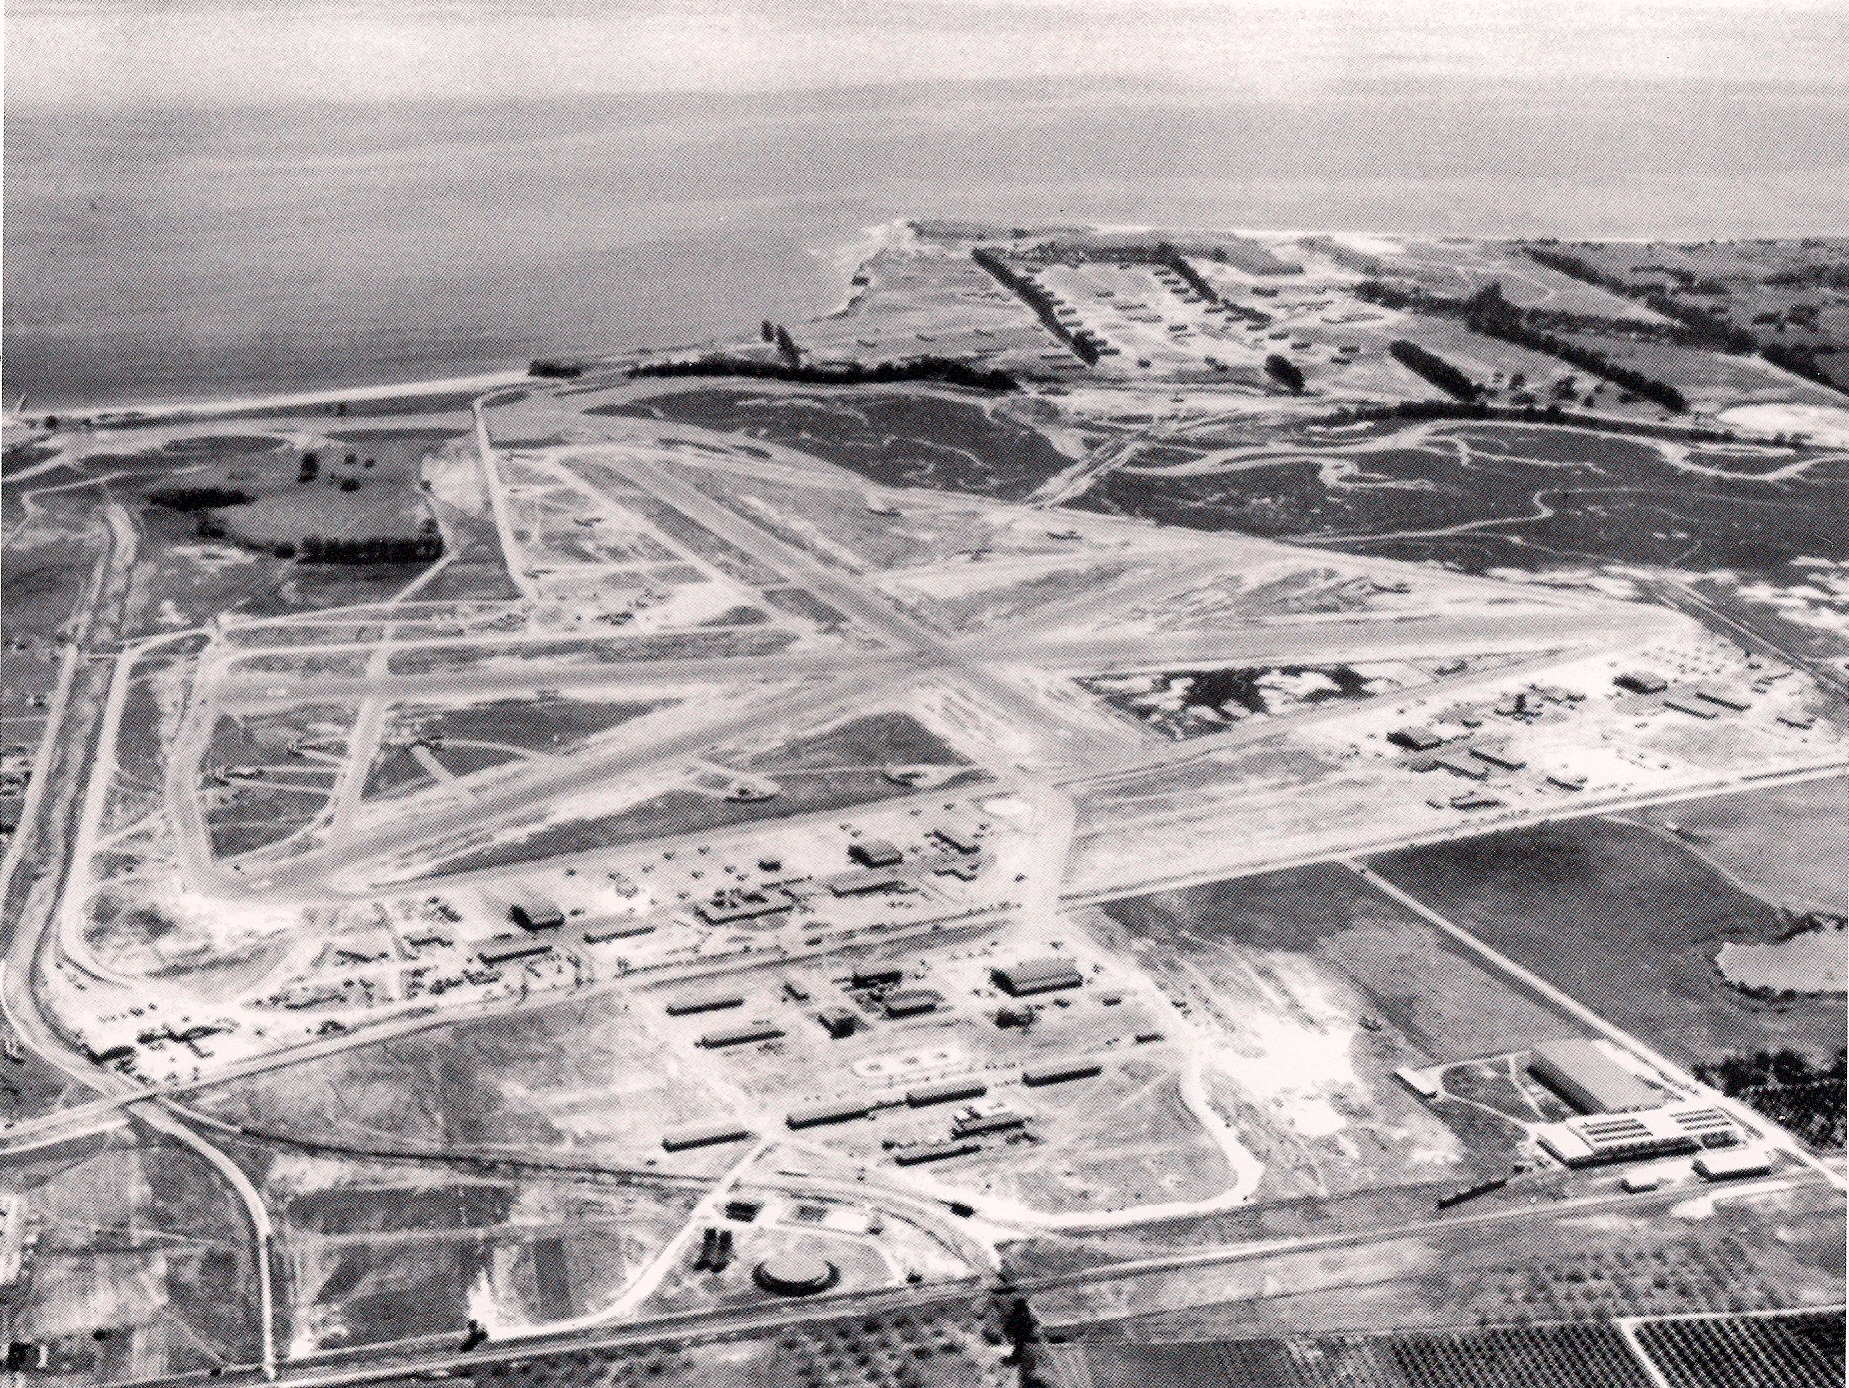 Overhead MCAS Santa Barbara In April Of 1944